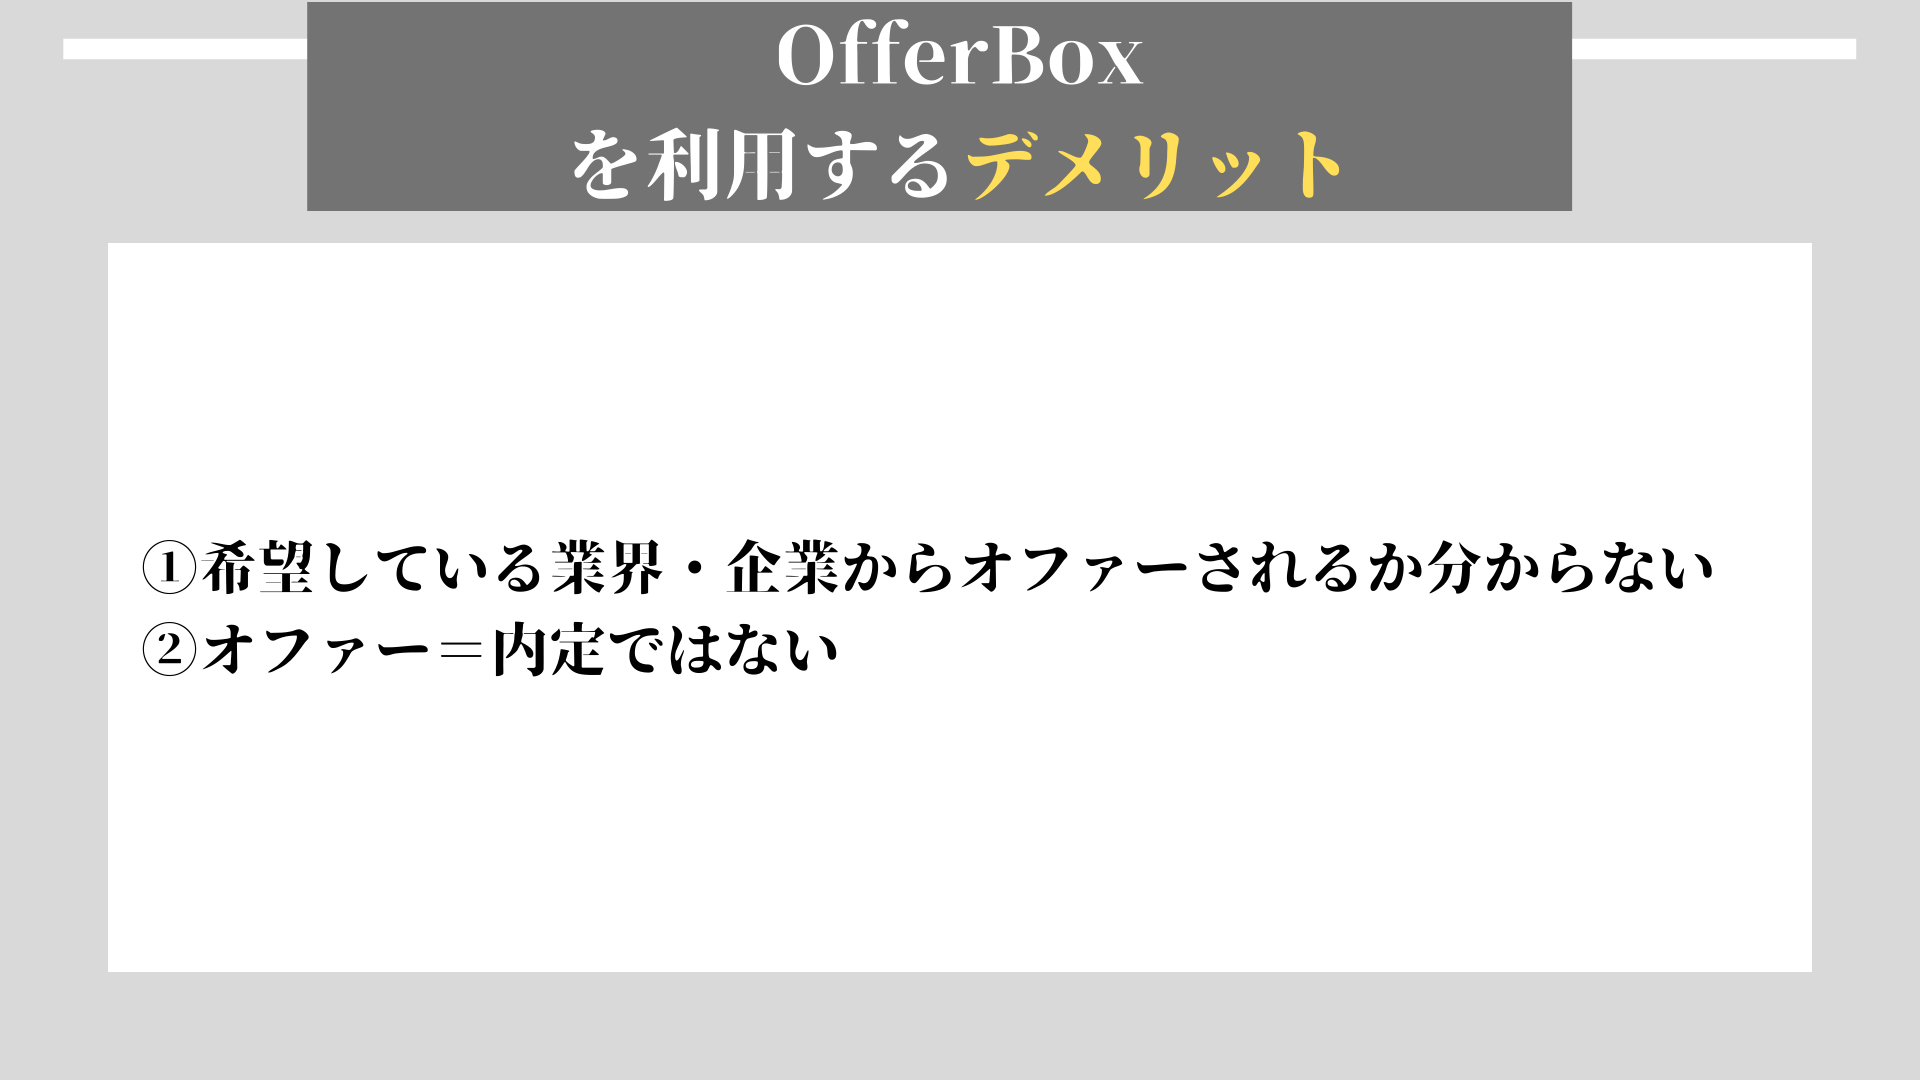 OfferBox デメリット